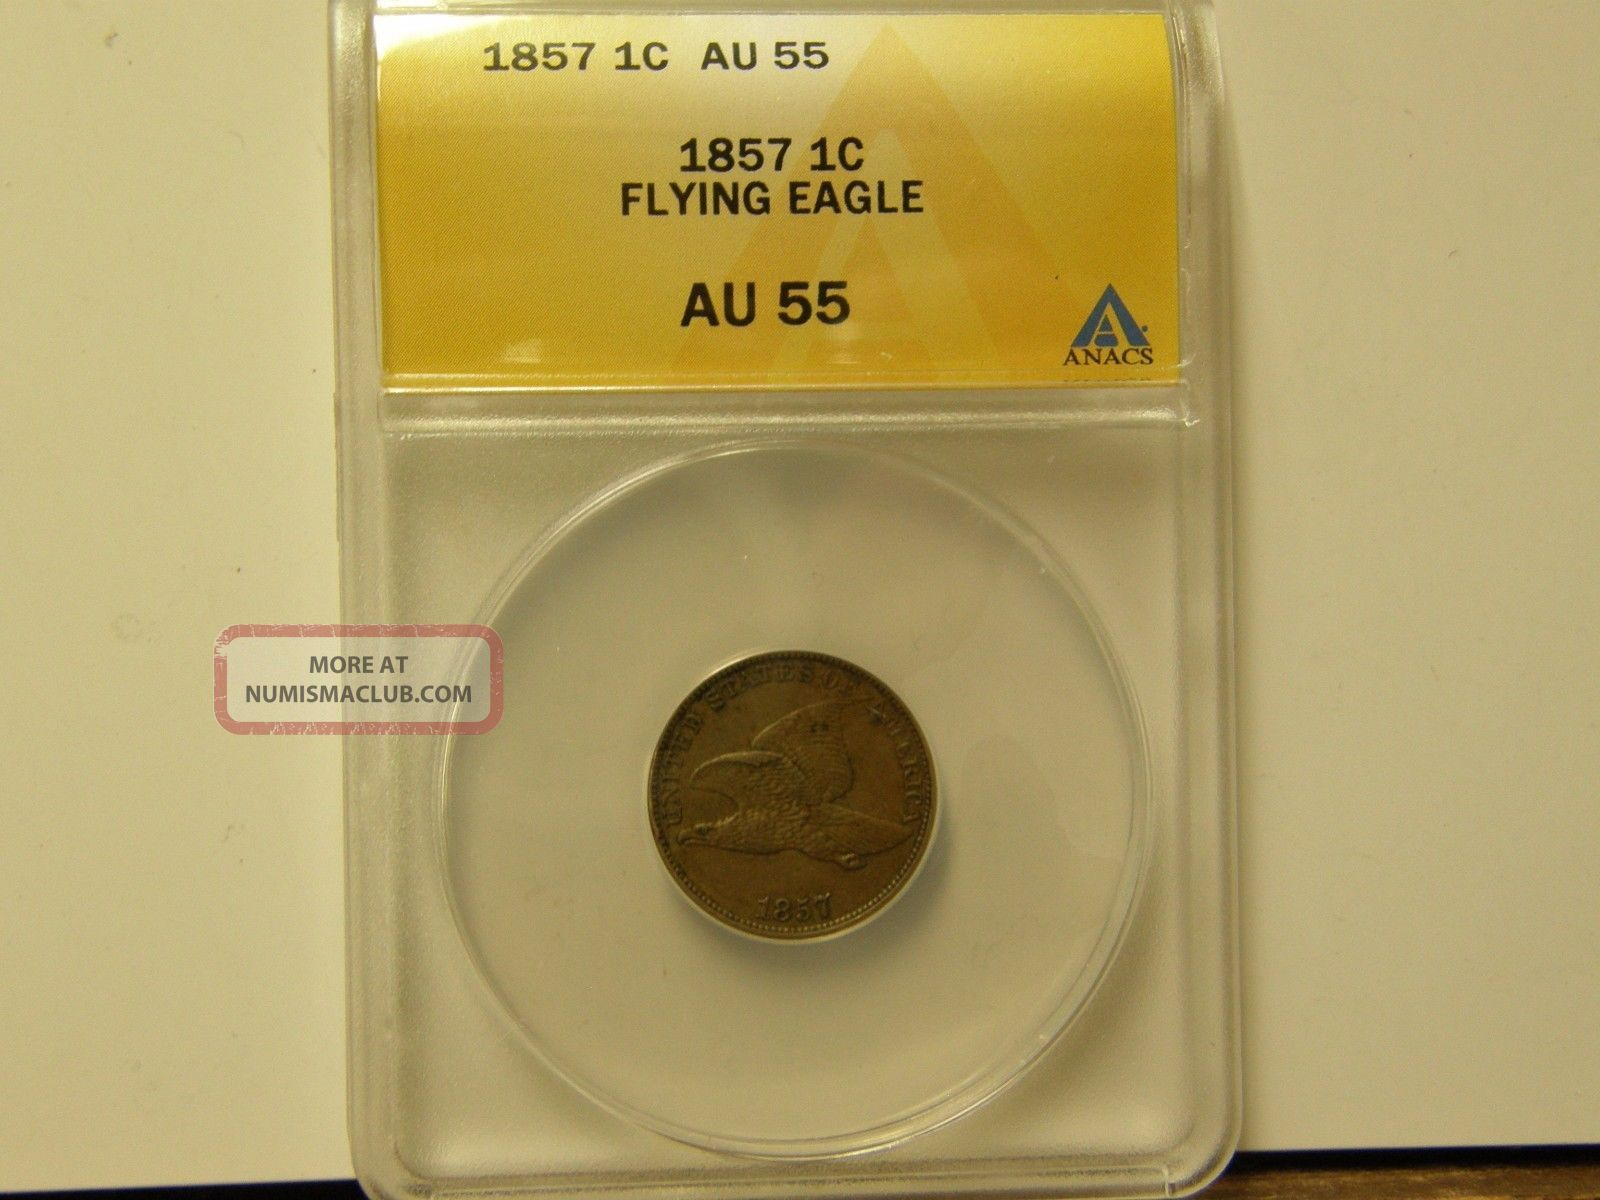 Anacs Au55 1857 Flying Eagle Cent - A Coin Small Cents photo